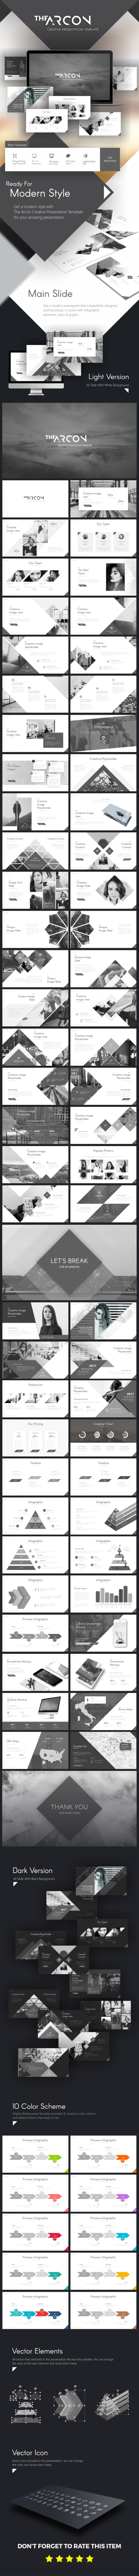 The Arcon Creative Presentation Template - Business PowerPoint Templates